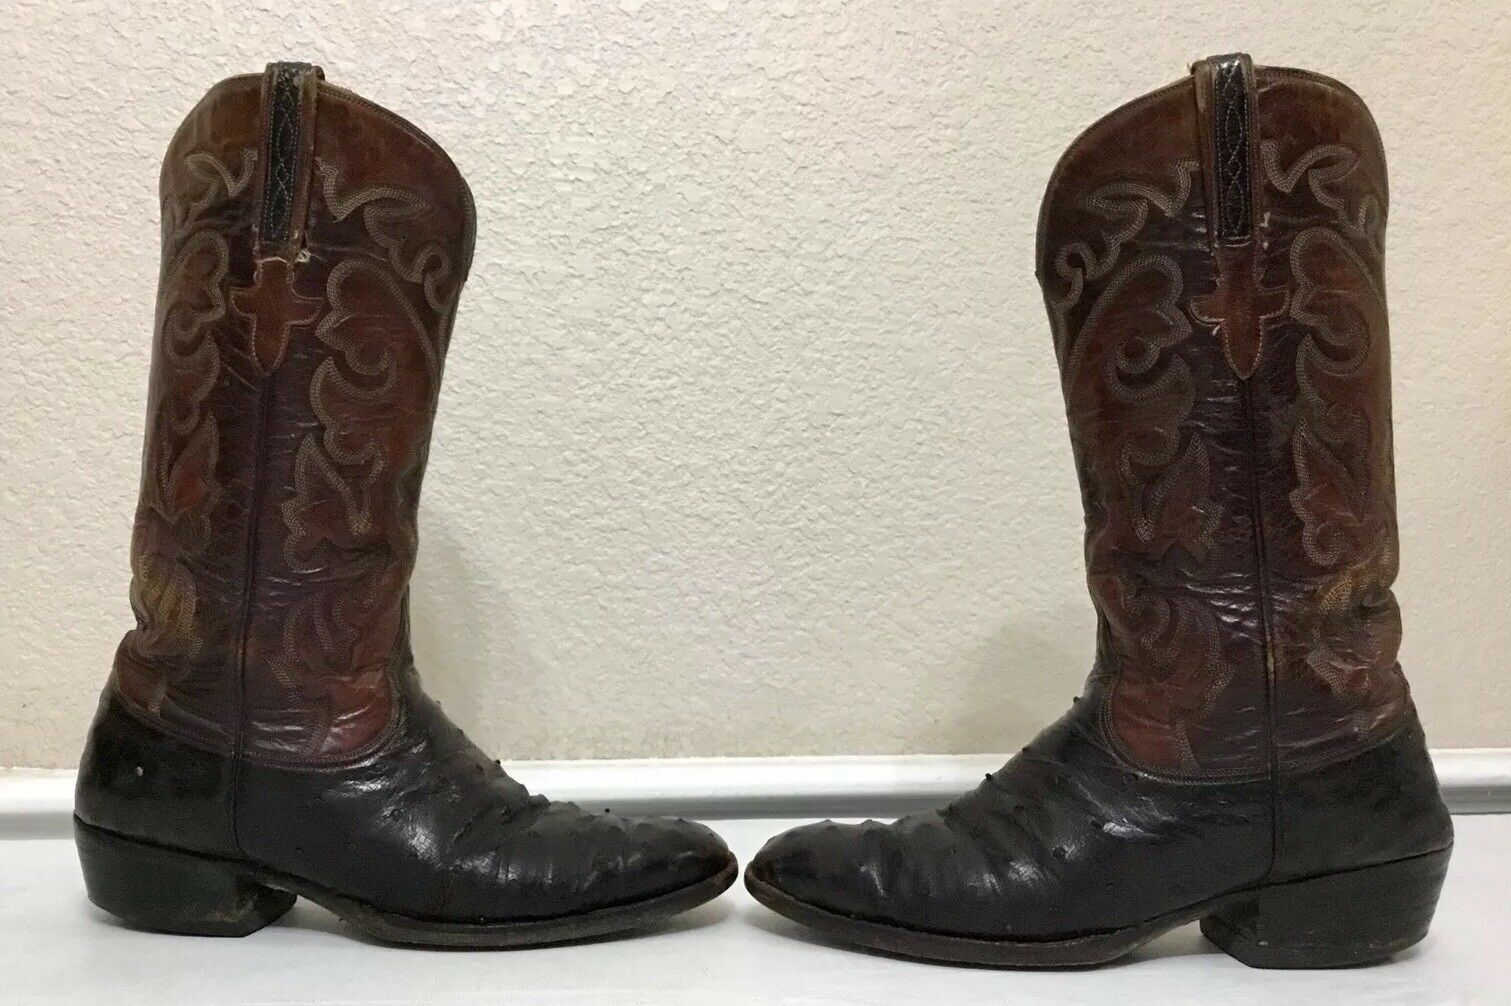 Vintage Lucchese San Antonio Ostrich Full Quill Leather Boots Size 10 C Mens